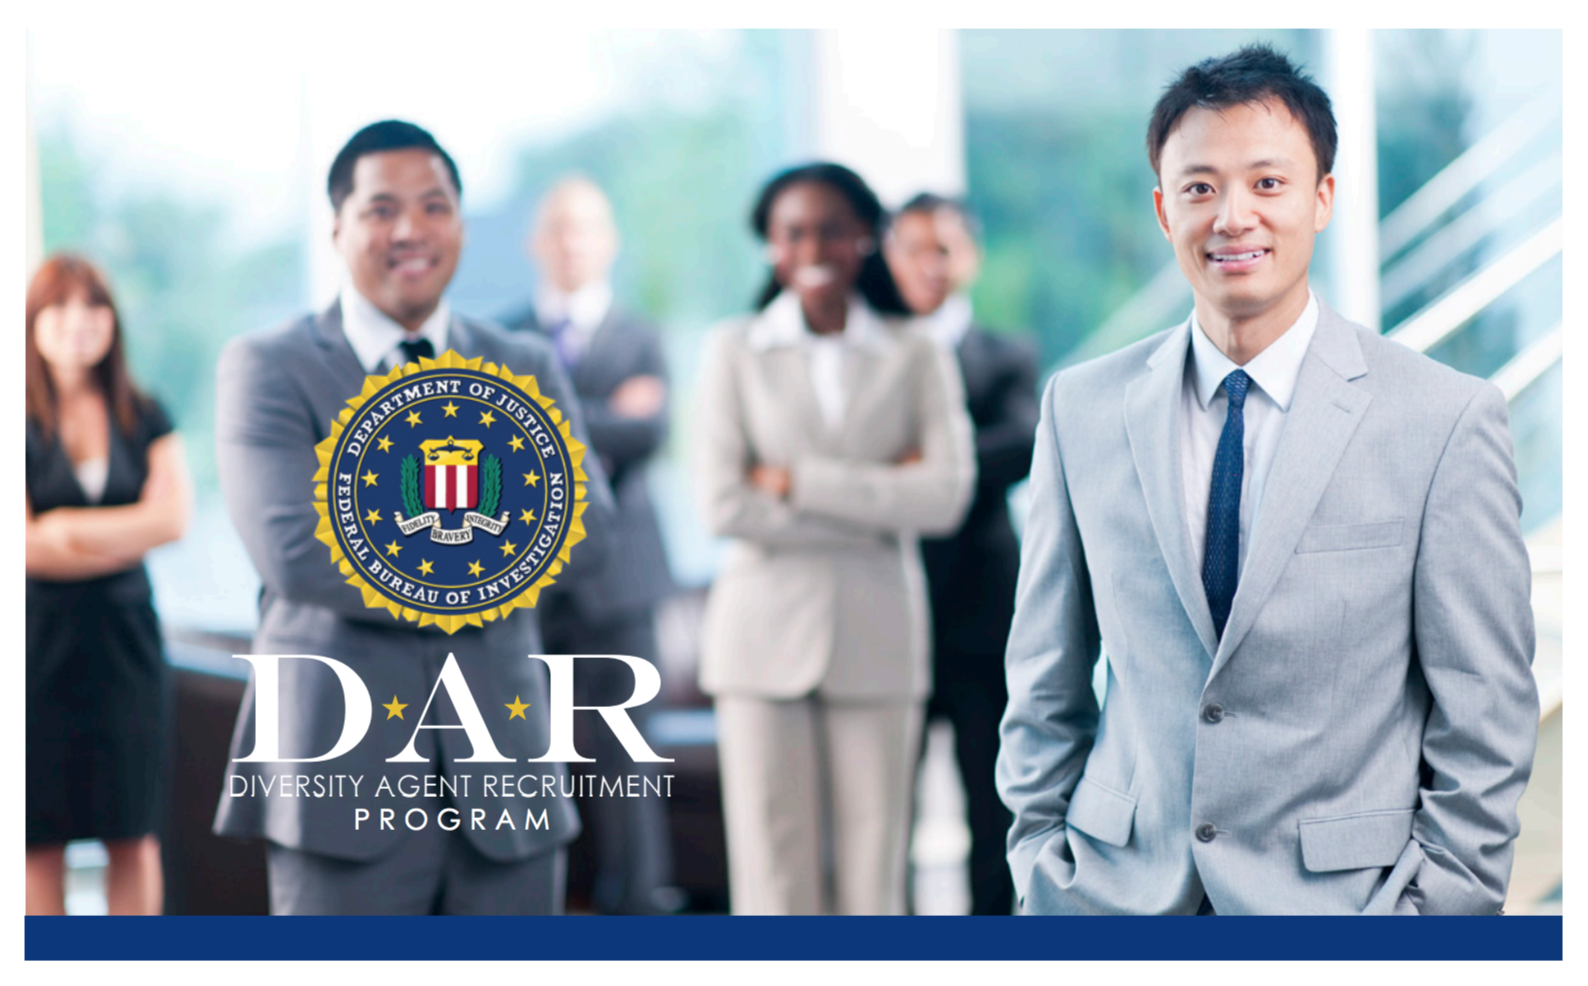 Through the Diversity Agent Recruitment (DAR) program, we want to collaborate with your organization to attract diverse, qualified applicants to the special agent role.